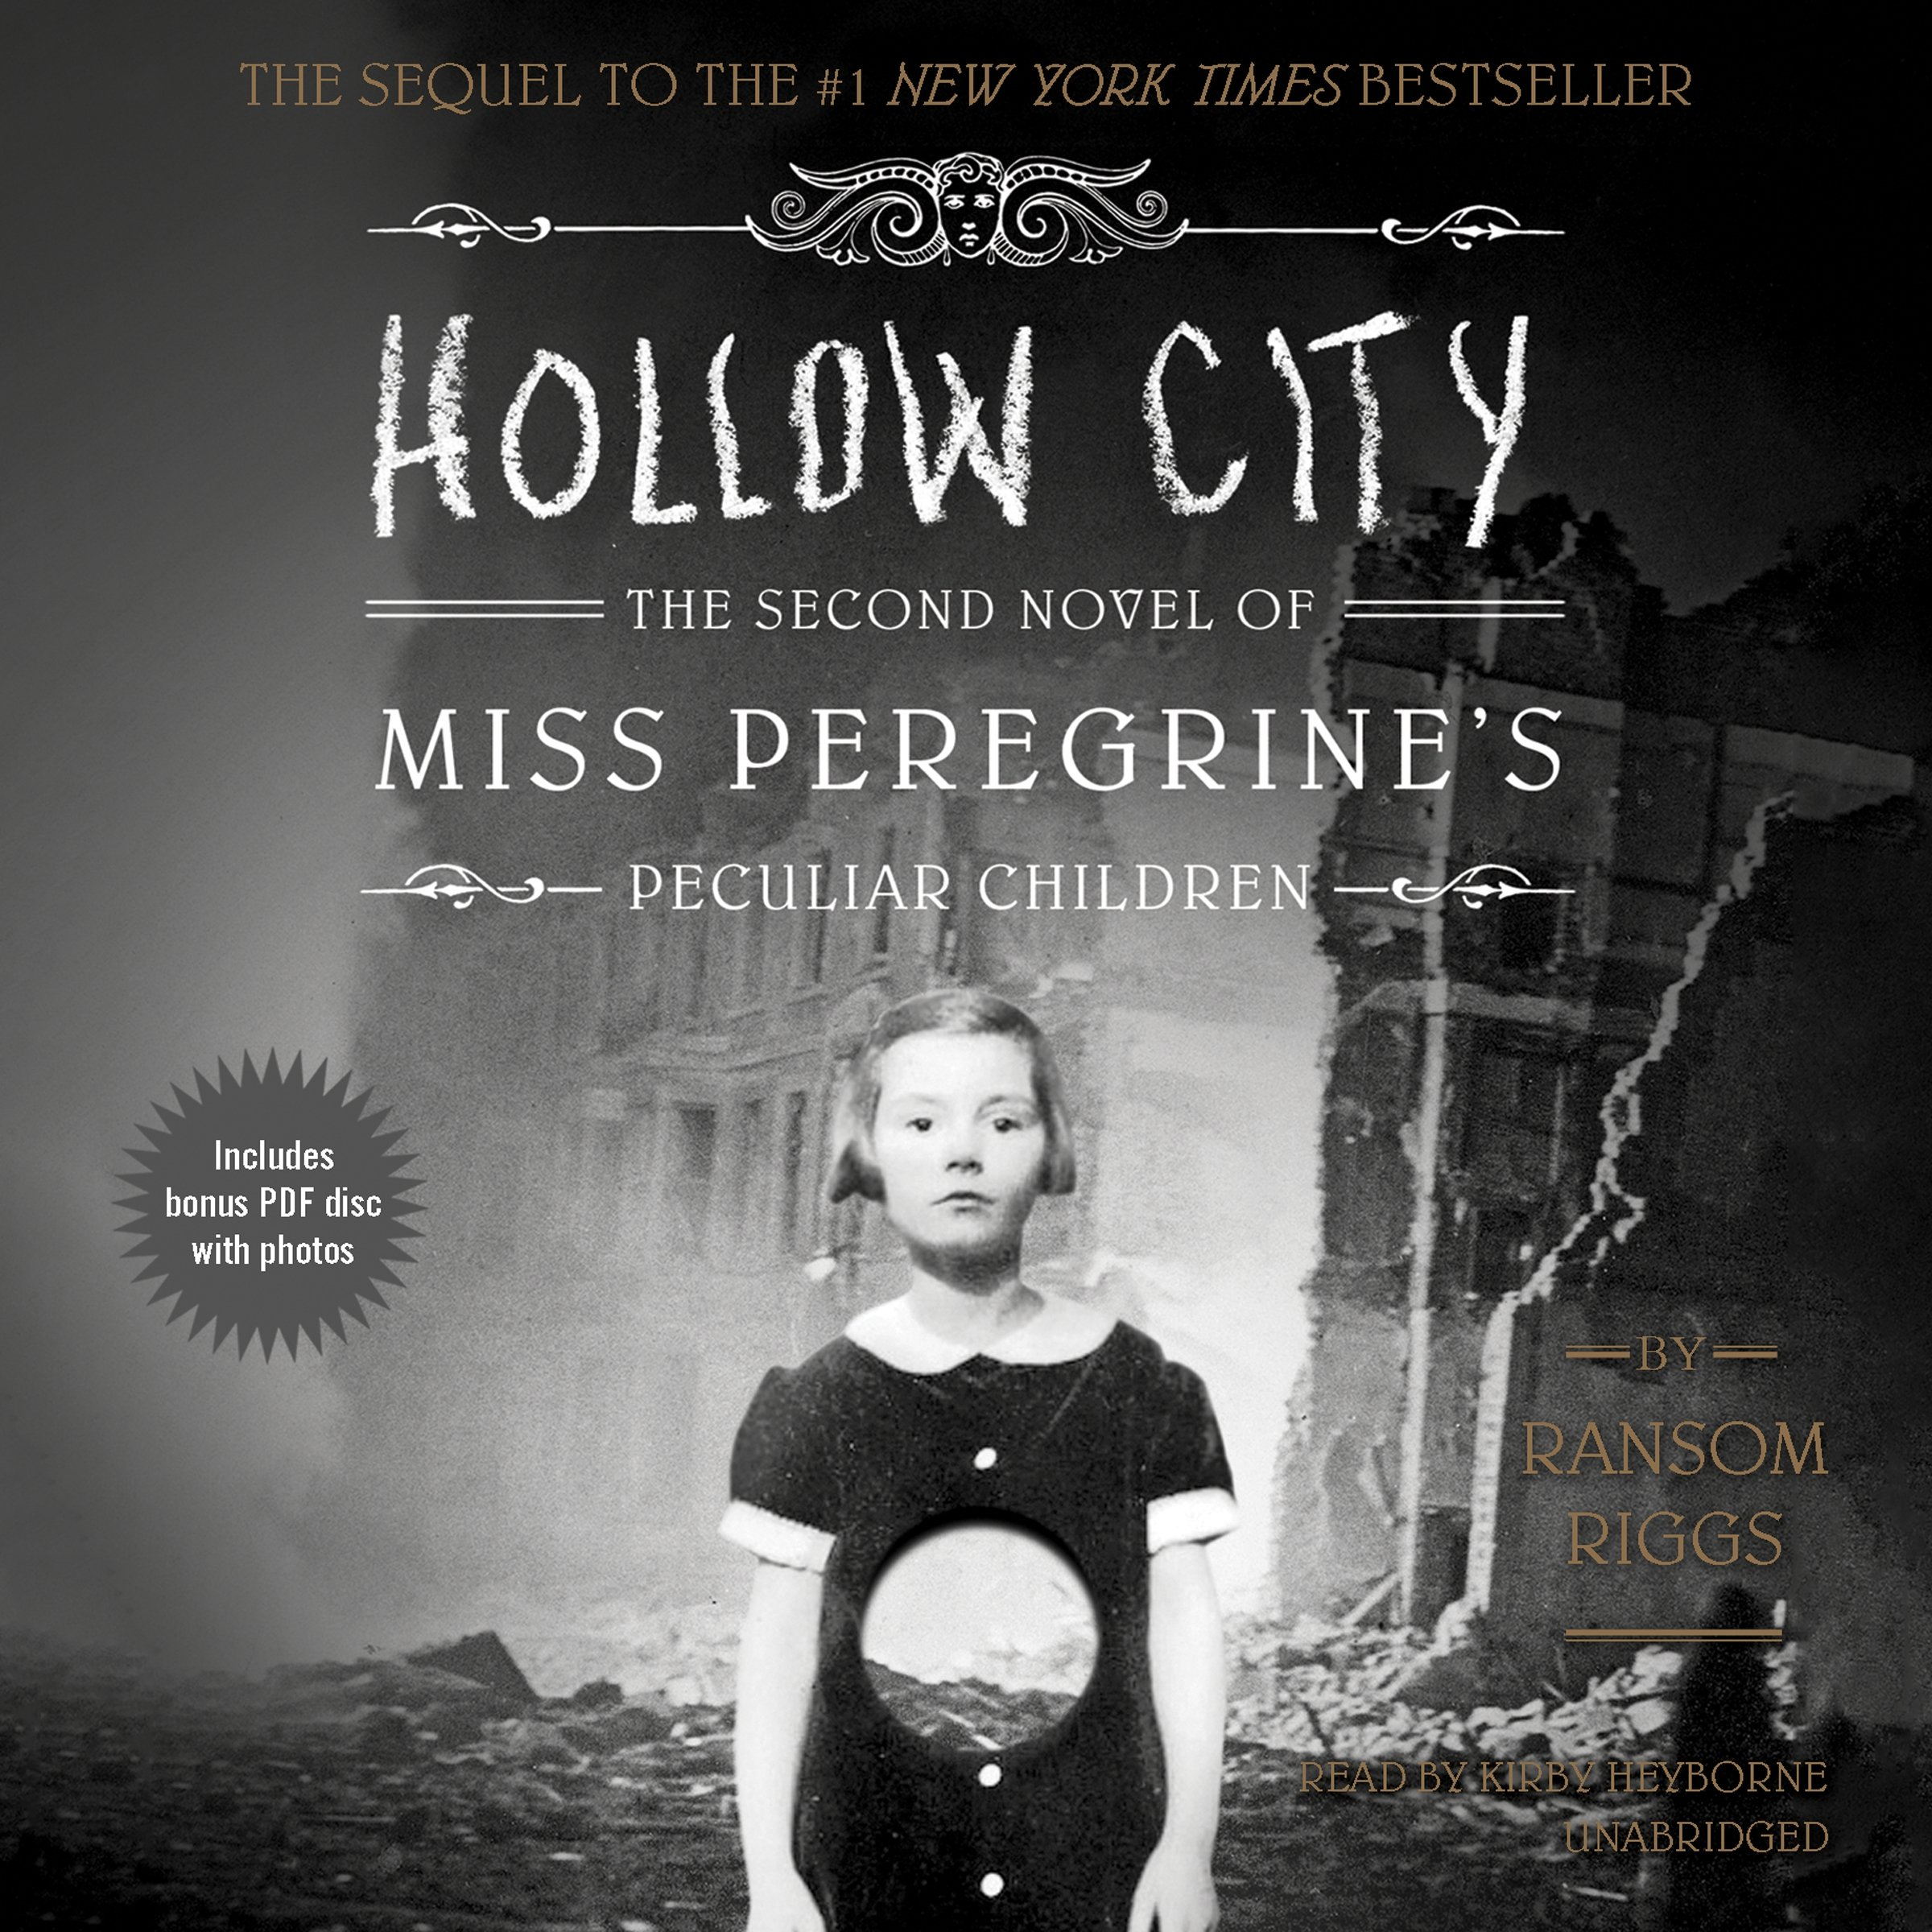 Hollow city the second novel of miss peregrines peculiar hollow city the second novel of miss peregrines peculiar children ransom riggs 9781624600395 amazon books fandeluxe Image collections